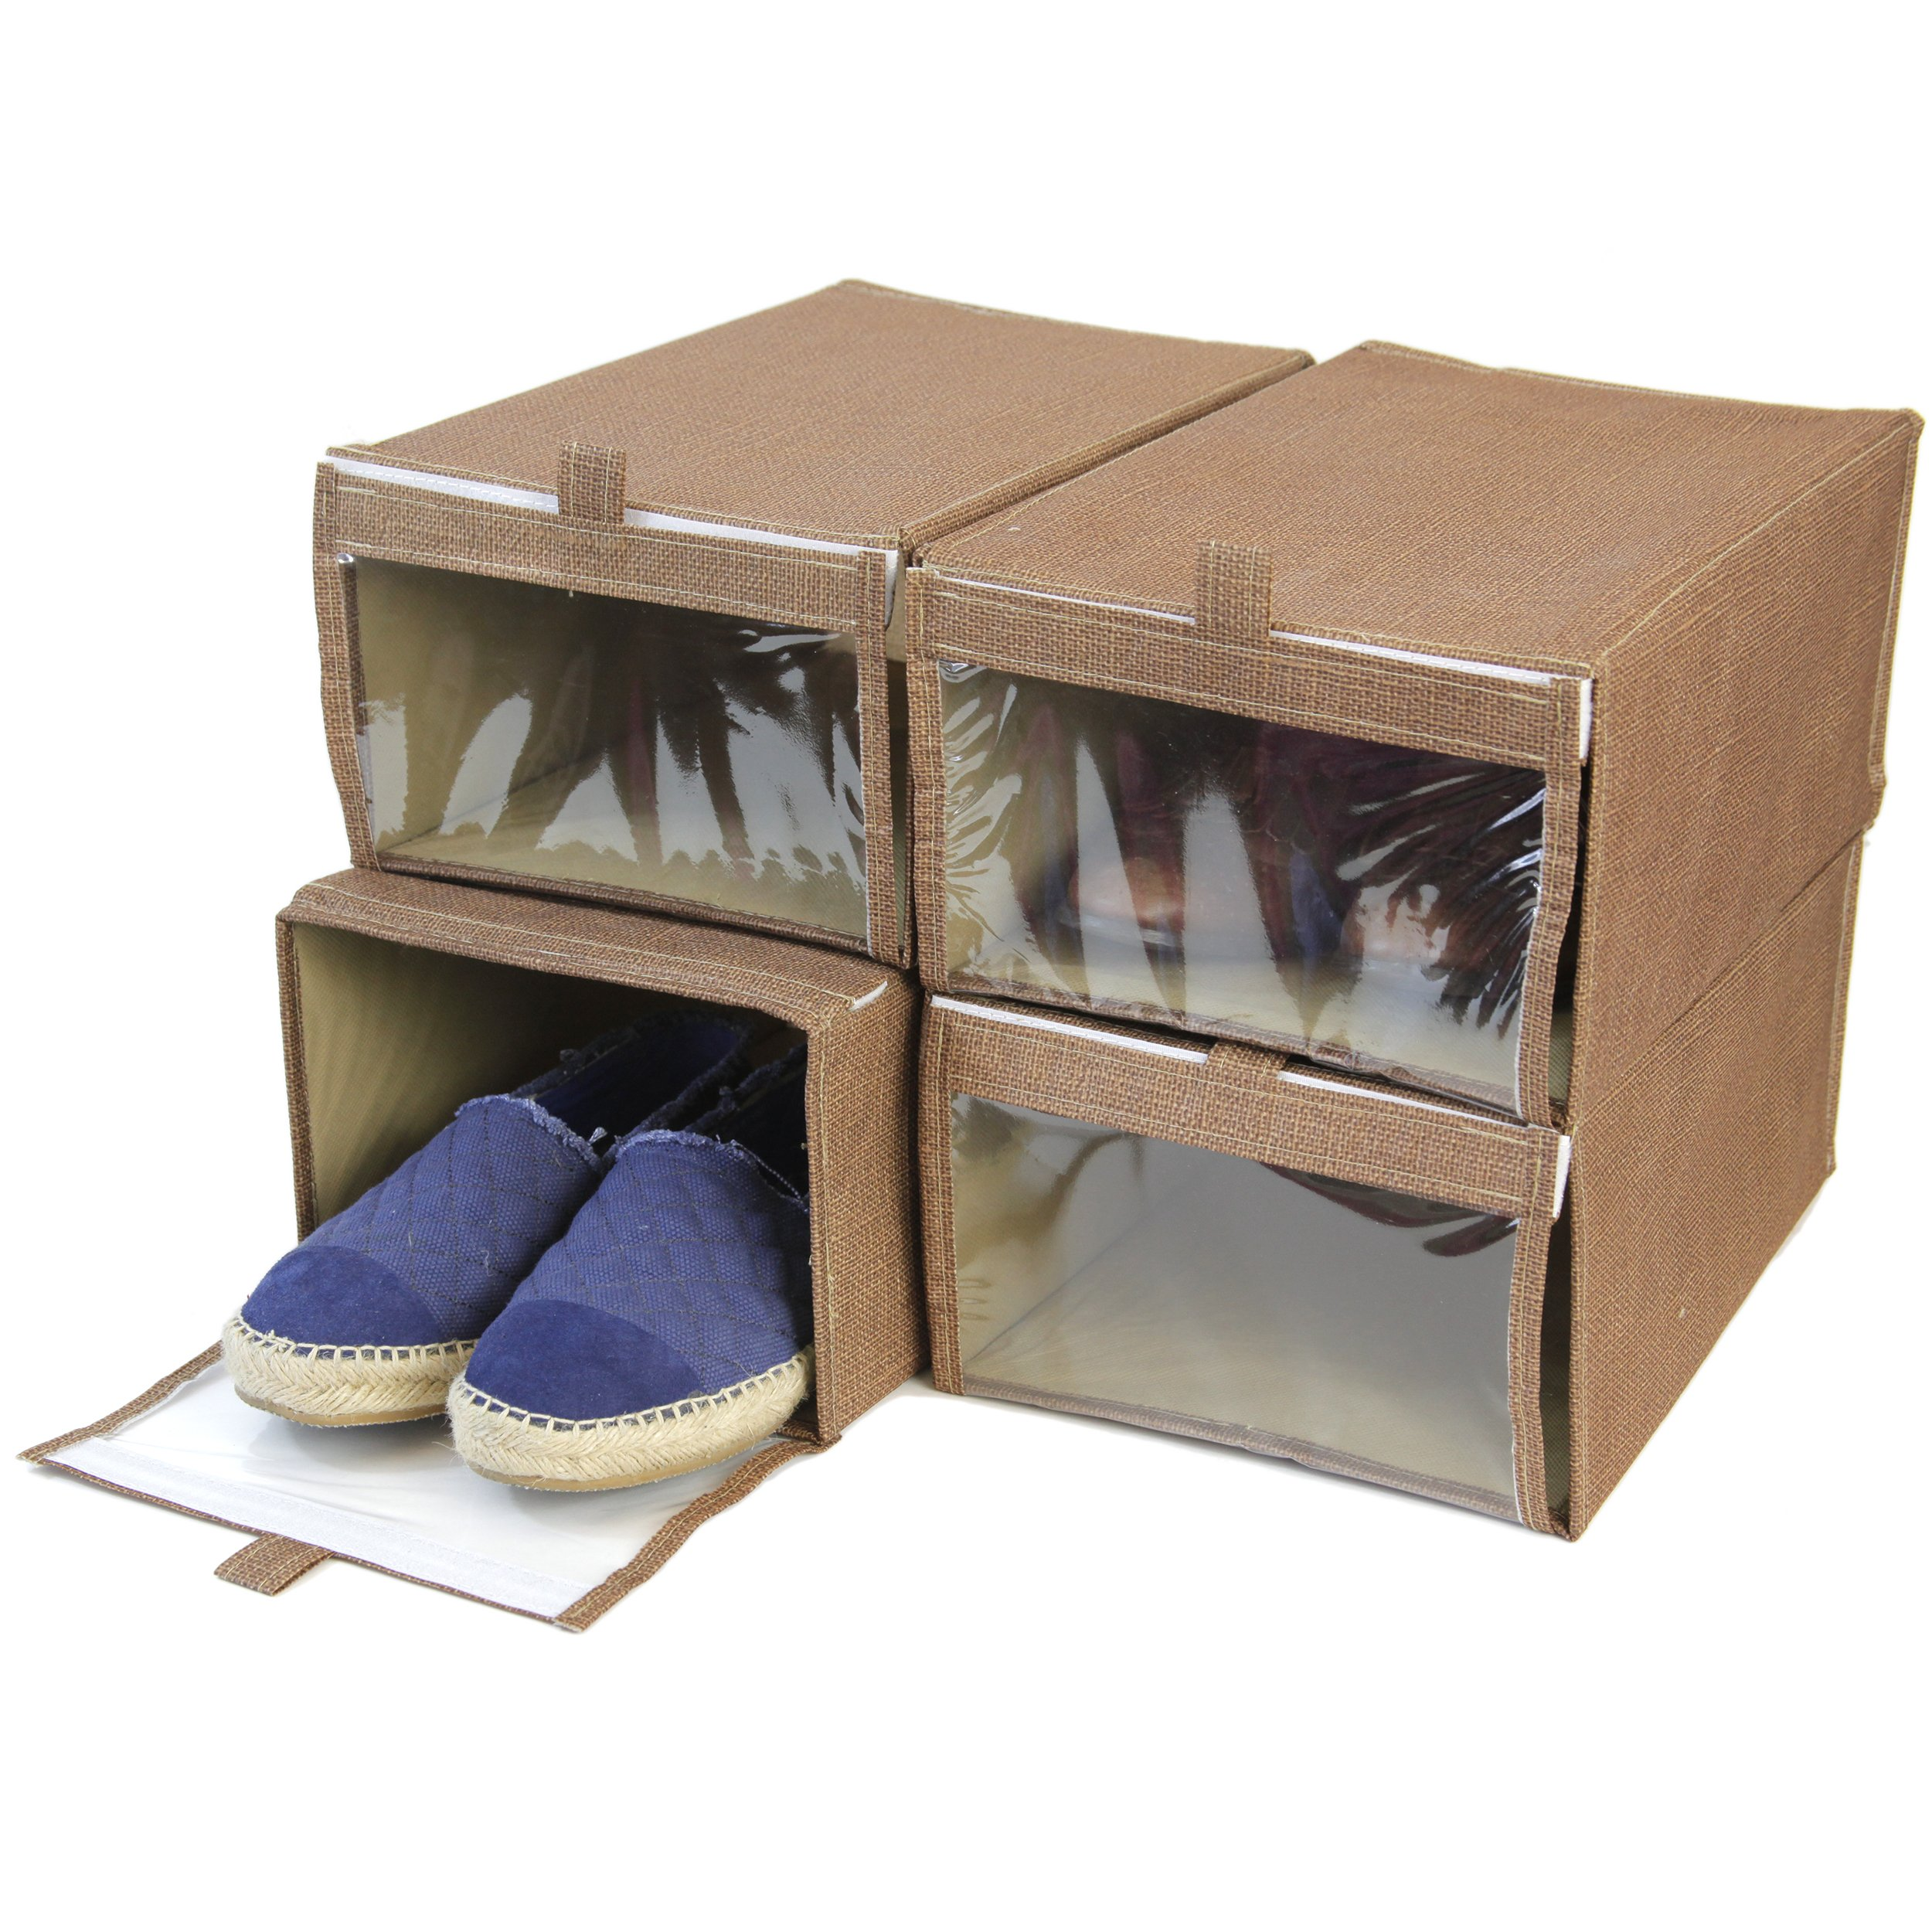 Set of 4 - Shoe Box XL Closet Organization with See Through Window (Brown Linen)